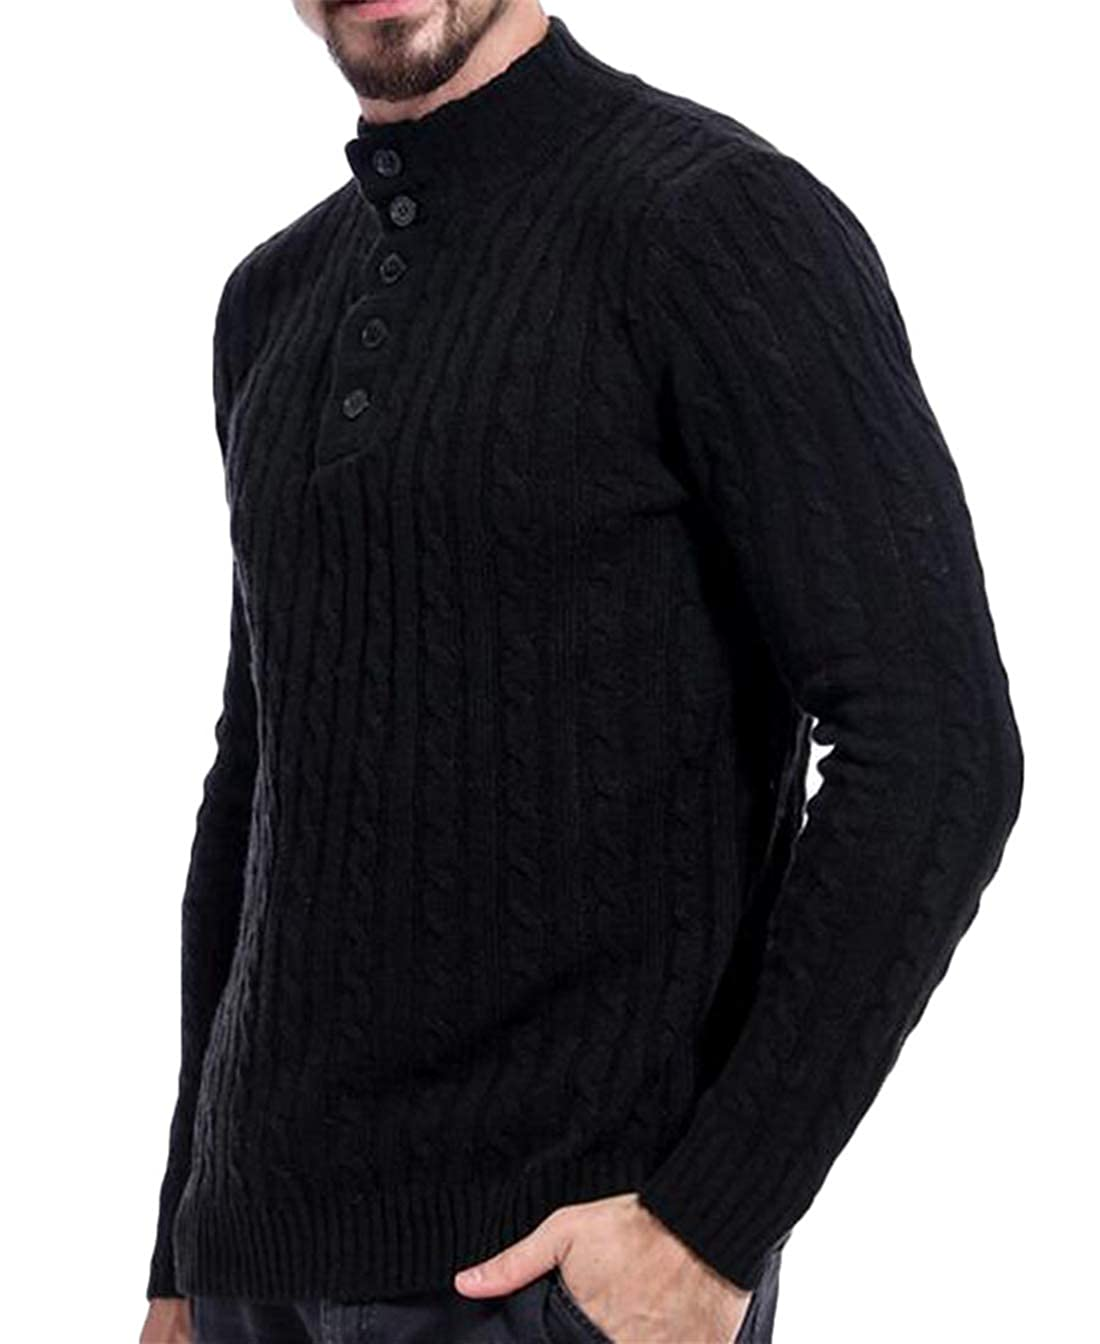 YYear Men Casual Pullover Cable Twist Slim Turtleneck Buttons Long Sleeve Sweater